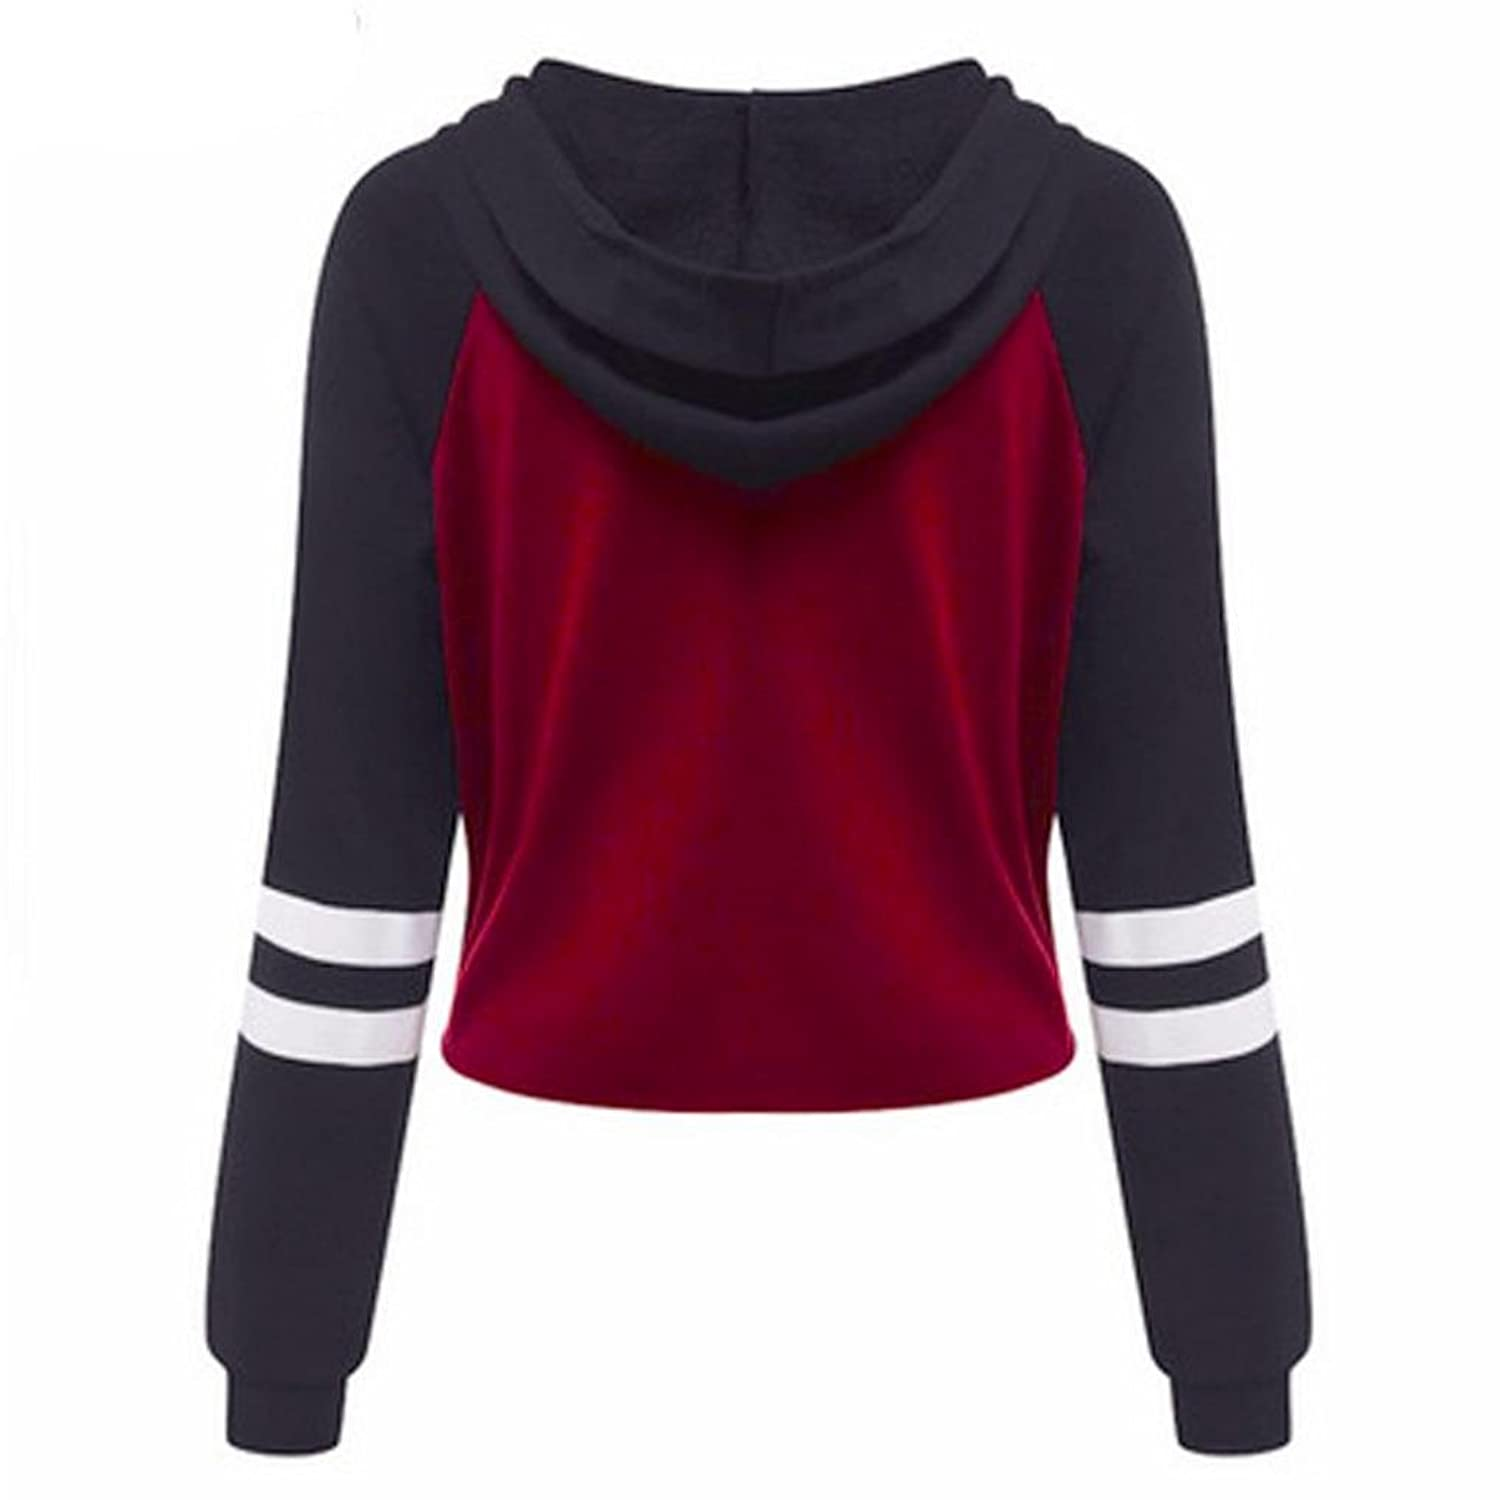 @ KESEE Women Letters Printed Round Neck Hedging Blouse